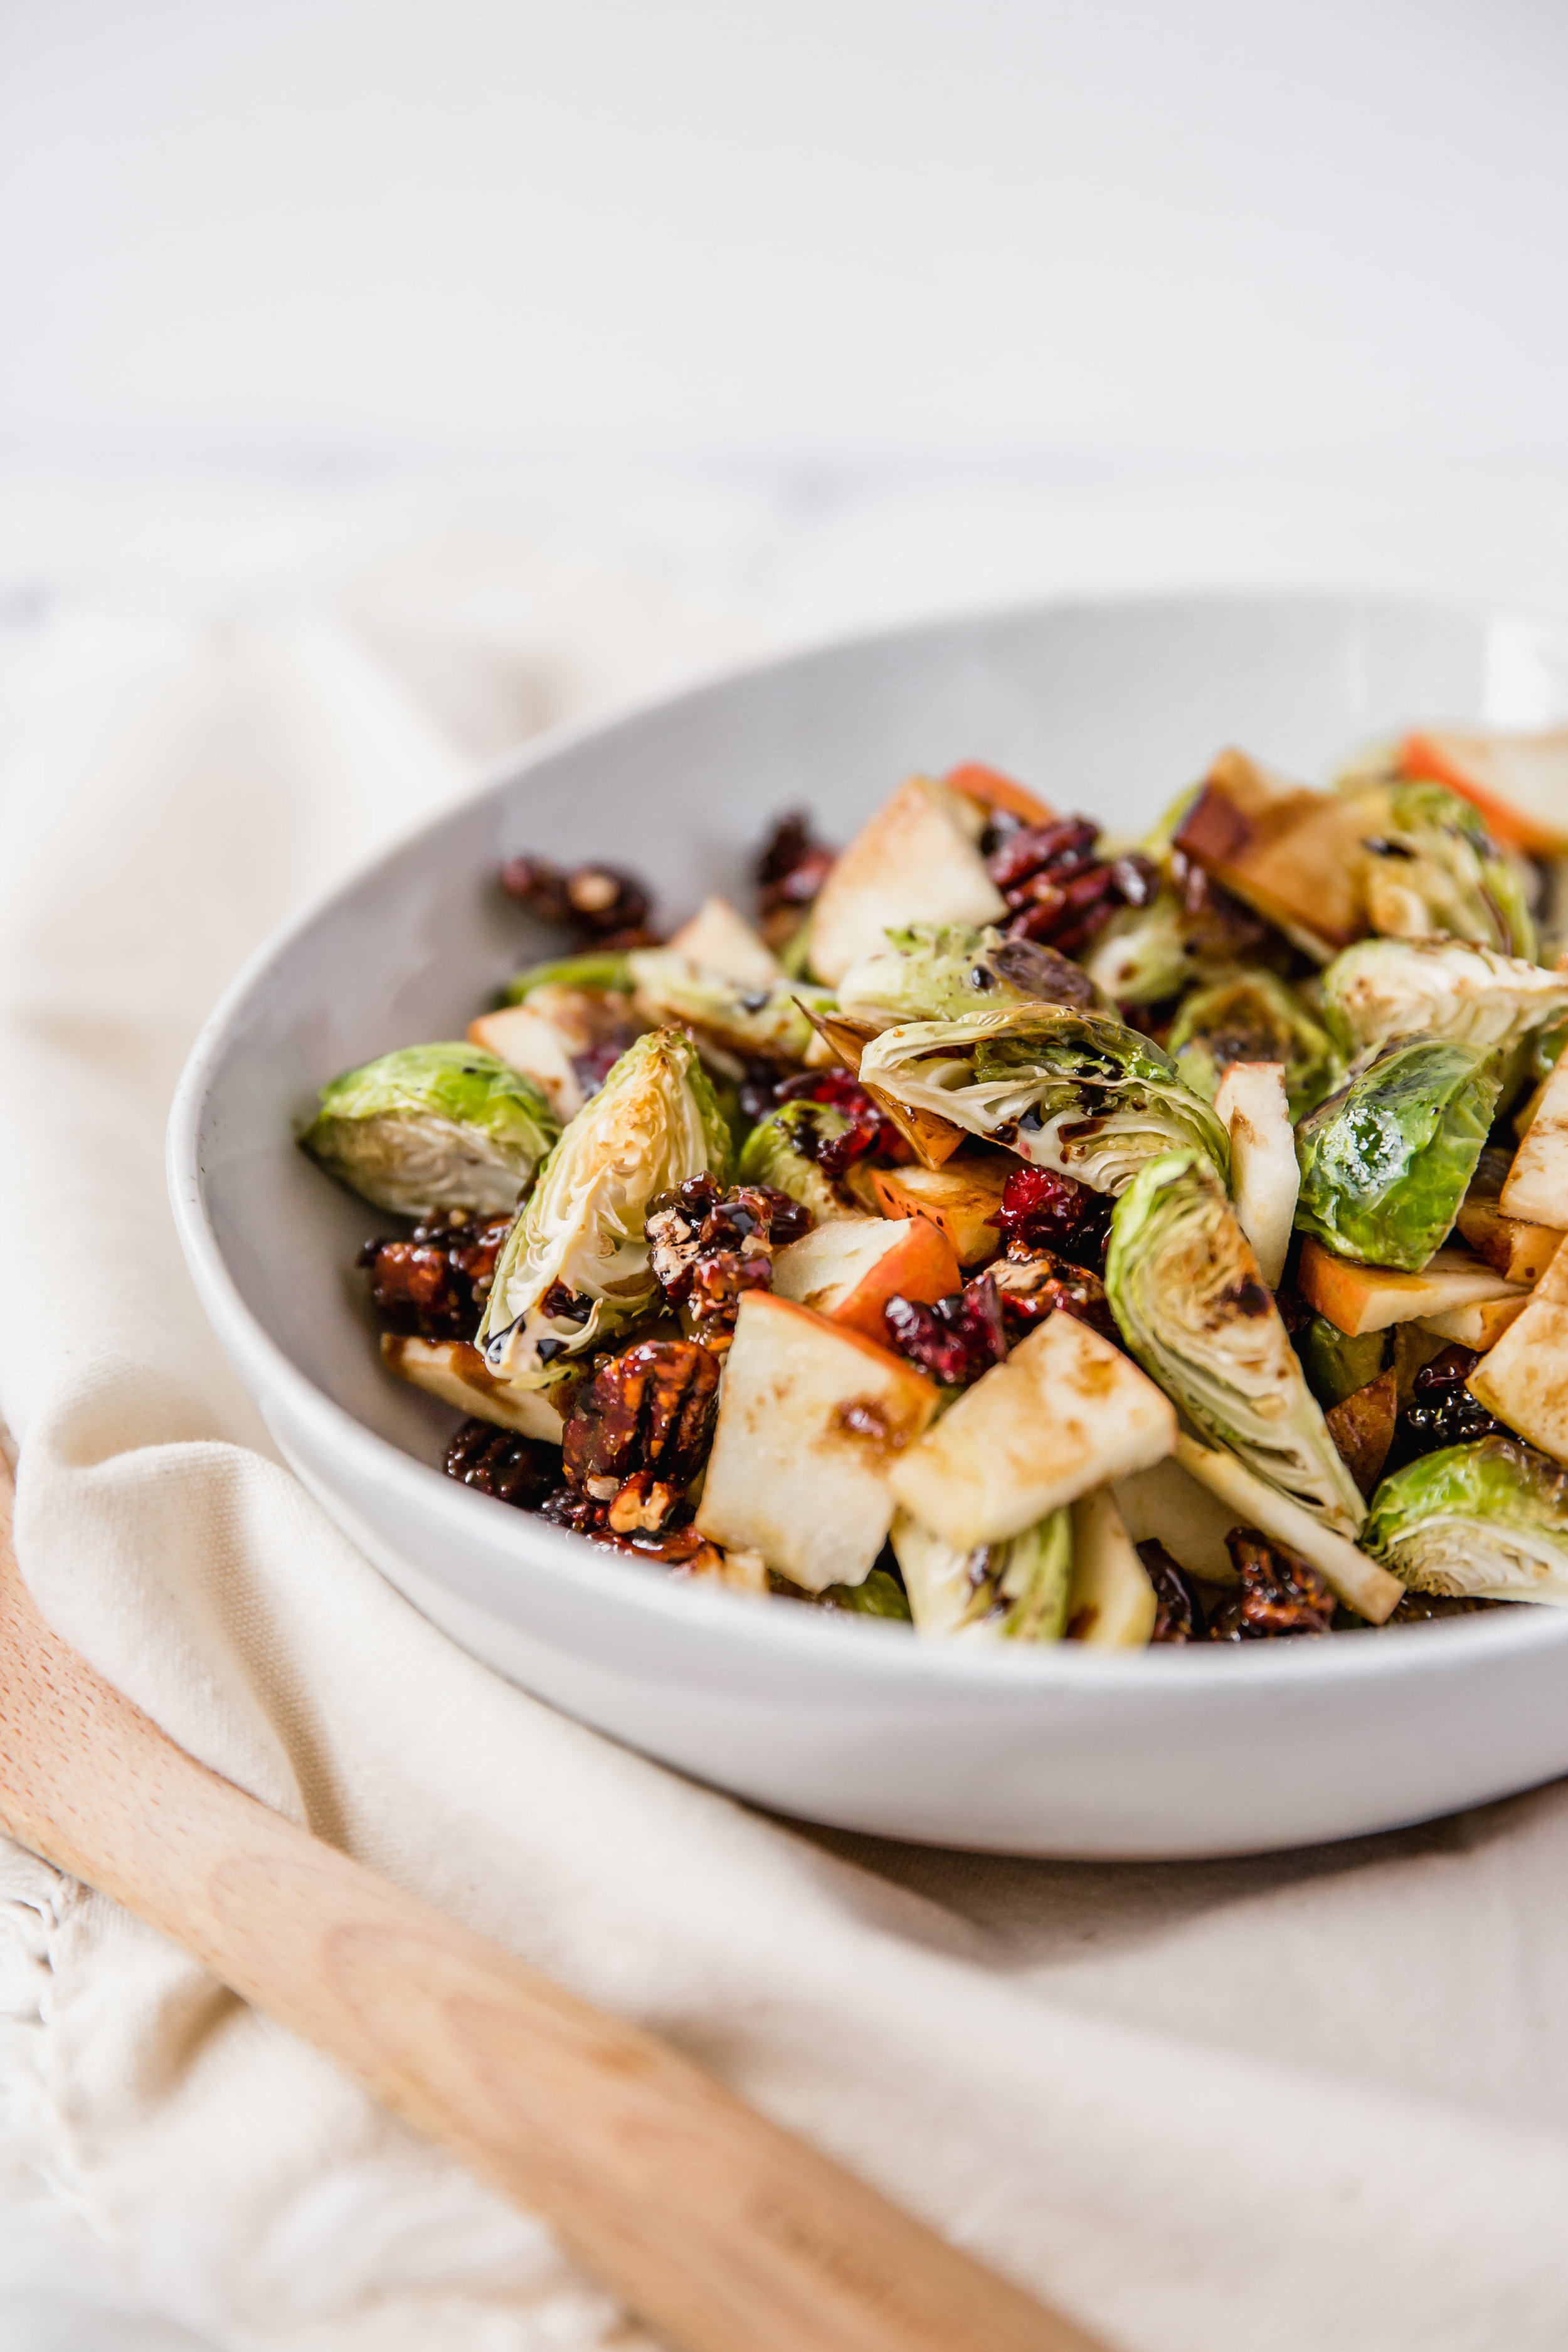 brussel_sprouts_balsamic_glaze_apple_cranberry-7.jpg